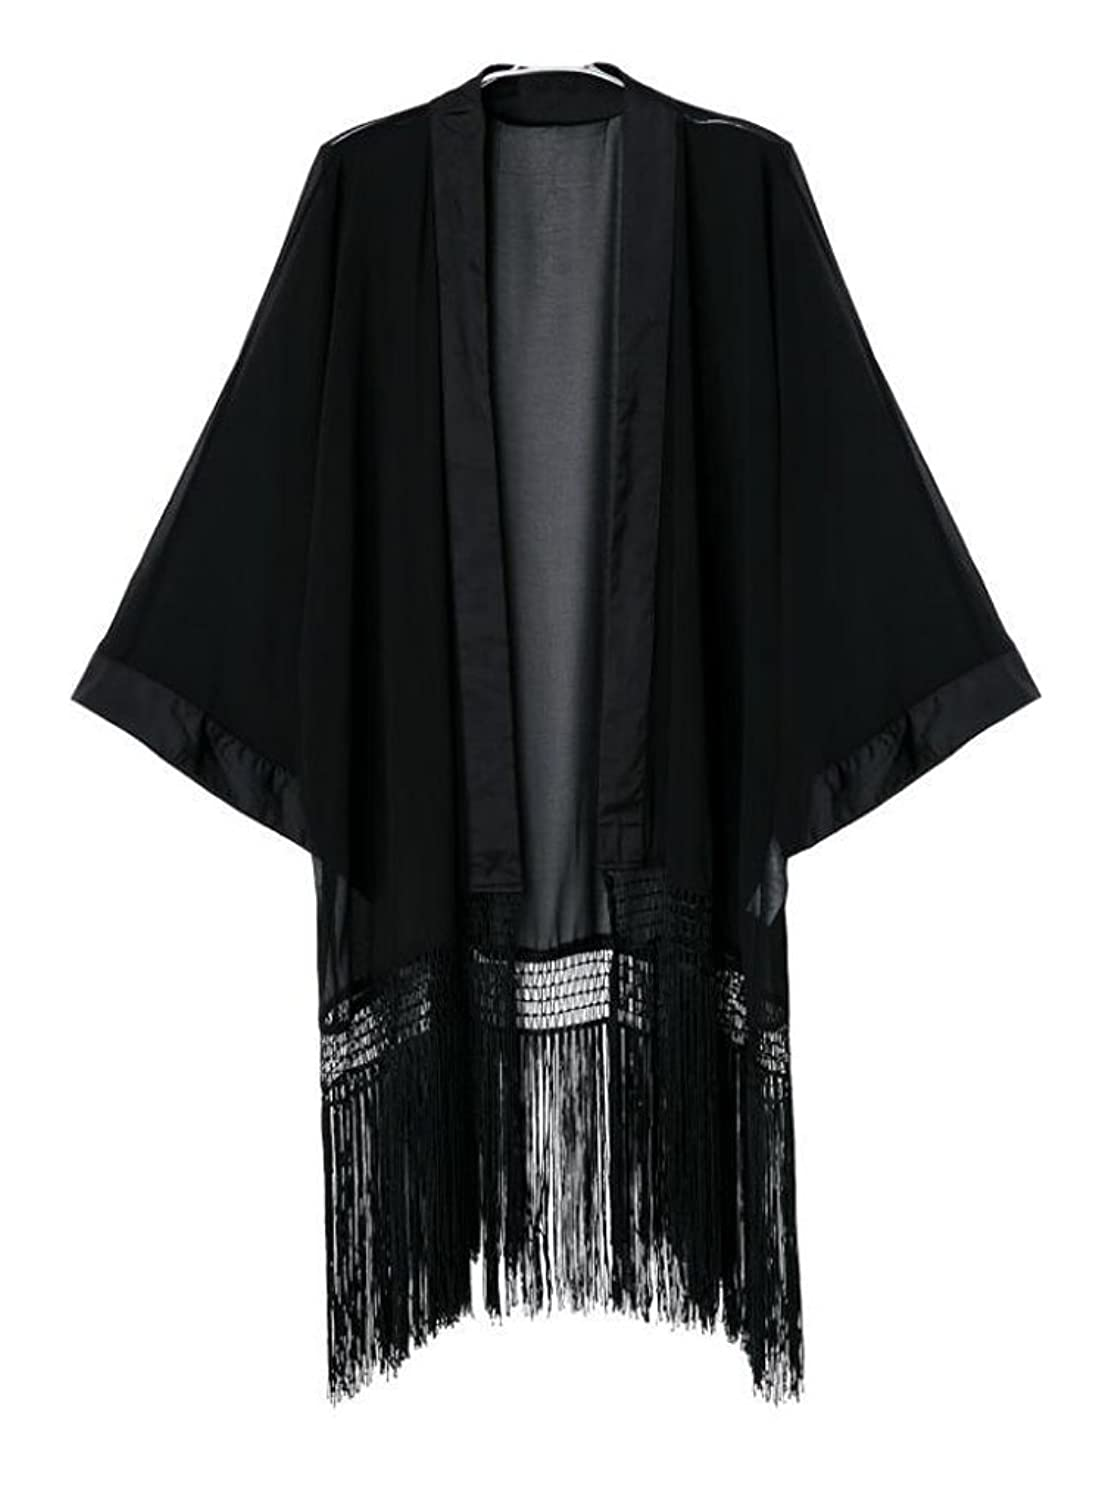 1920s Style Wraps Plus Size Tassel Long Loose Kimono Cardigan Black $15.99 AT vintagedancer.com